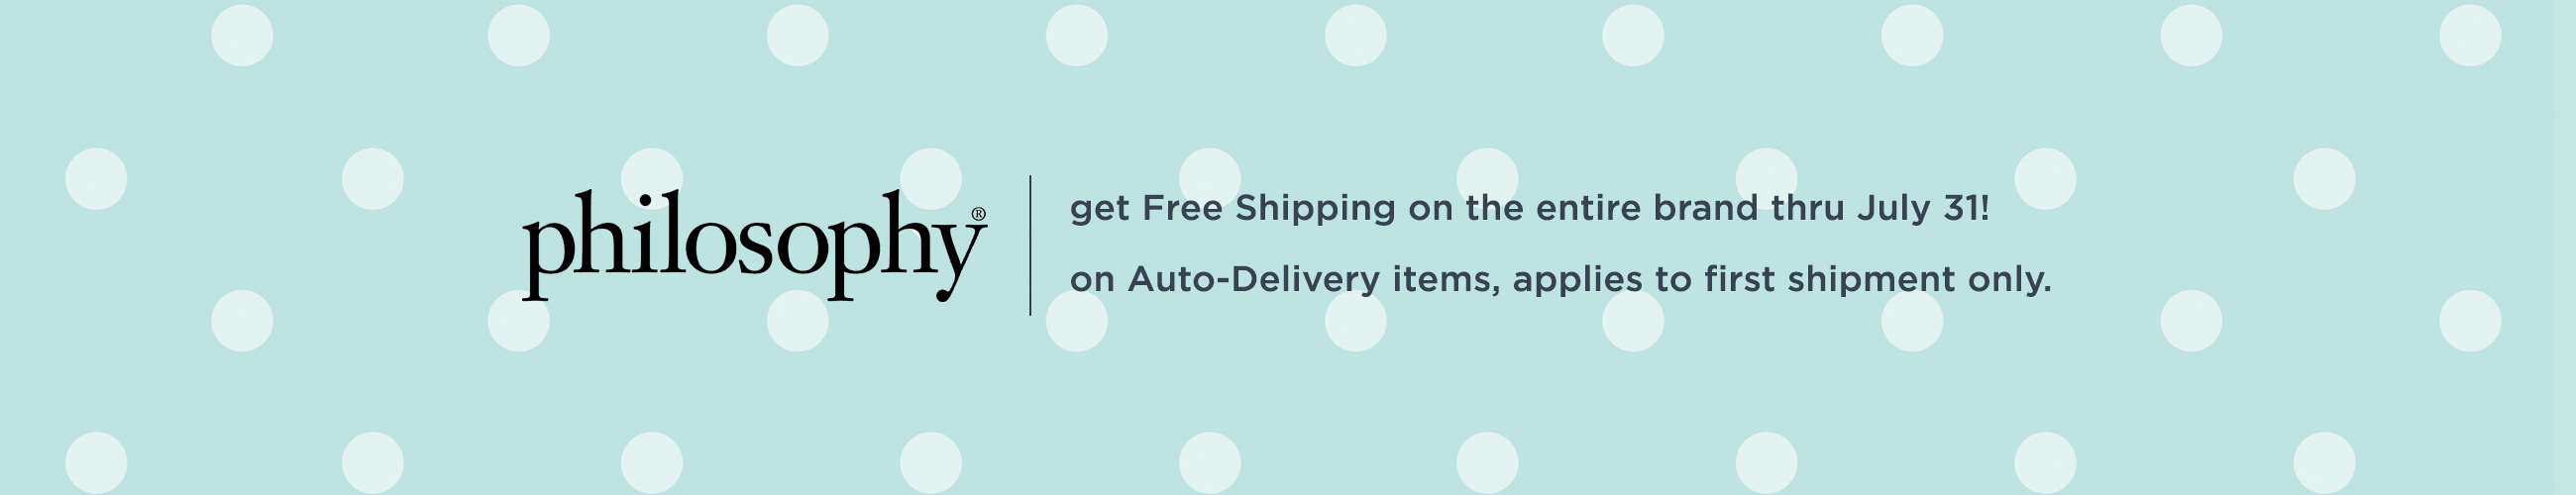 philosophy. get Free Shipping on the entire brand thru July 31!  on Auto-Delivery items, applies to first shipment only.